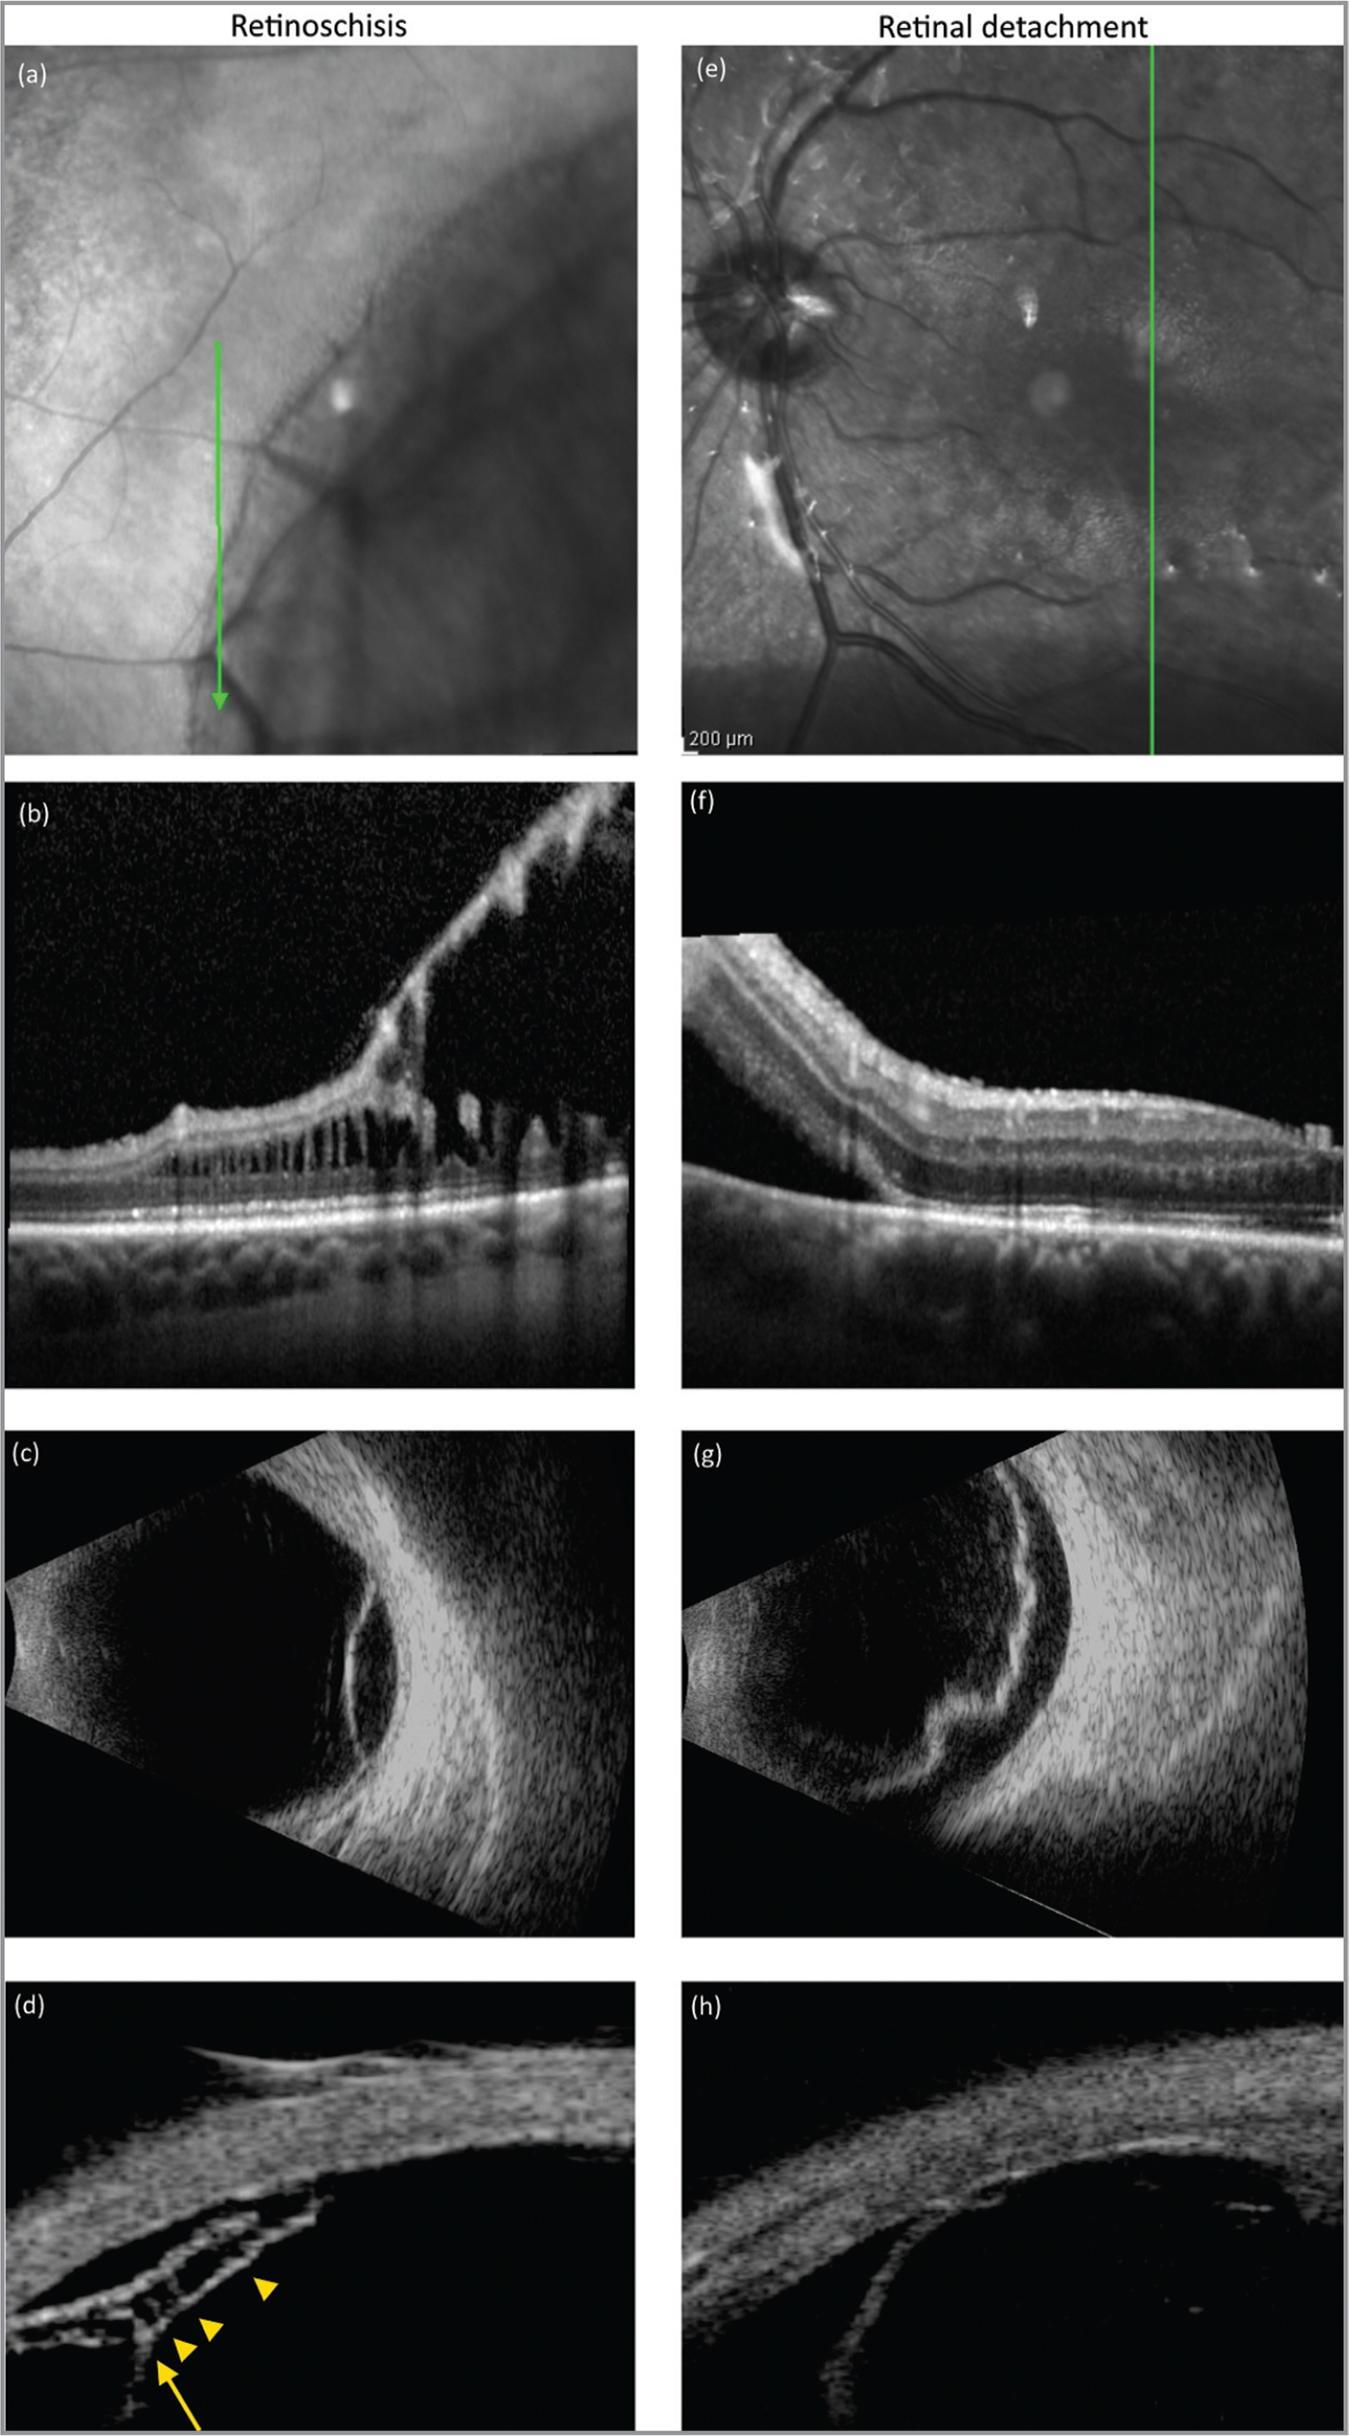 Comparison of multi-imaging sample cases of retinoschisis (a–d) and retinal detachment (e–h) showing infrared (a, e), optical coherence tomography (OCT) (b, f), ultrasonography B-scan (c, g), and ultrasound biomicroscopy (UBM) (d, h) images. The UBM image of the retinoschisis case (d) shows both splitting of the retinal layers (arrow) and intraretinal pillars (arrowheads), whereas the UBM of the retinal detachment case displays a single detached layer. These findings correlate well with the OCT image.